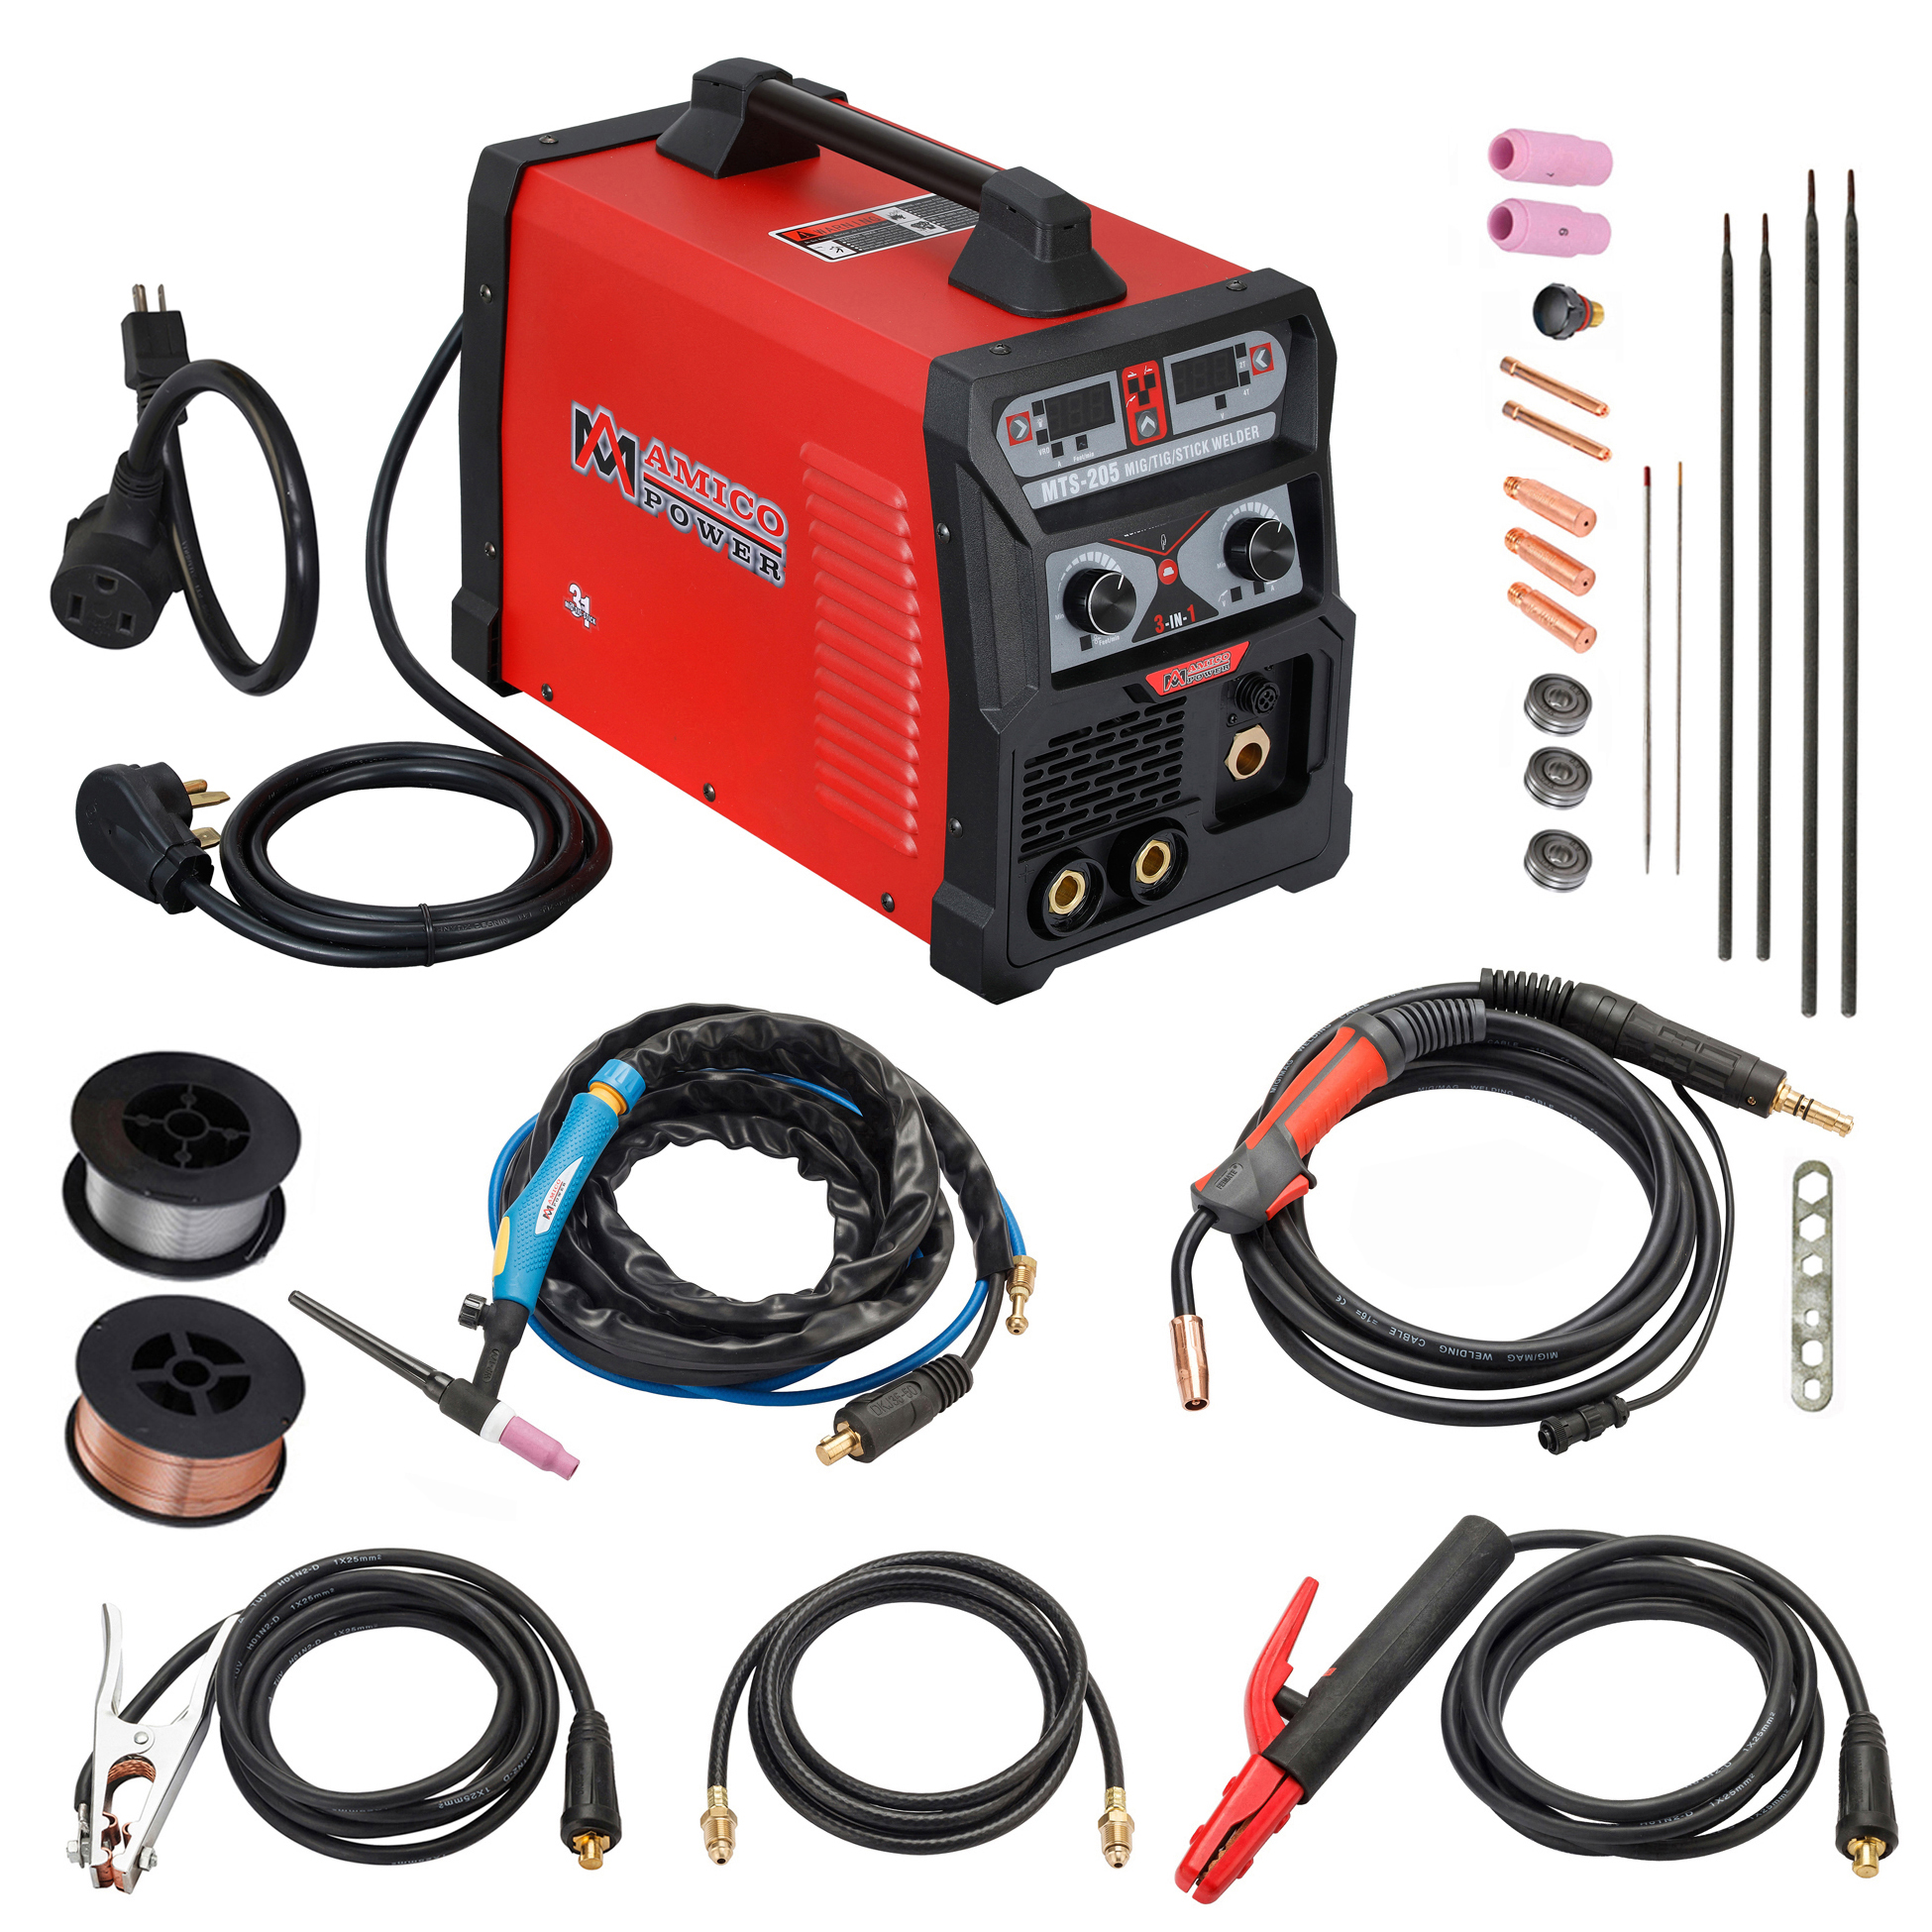 205-Amp MIG Flux Core Wire, TIG Torch Stick Arc Combo Welder, DC Inverter 3-in-1 Welding, 2T/4T 115/230V Dual Voltage, MTS-205